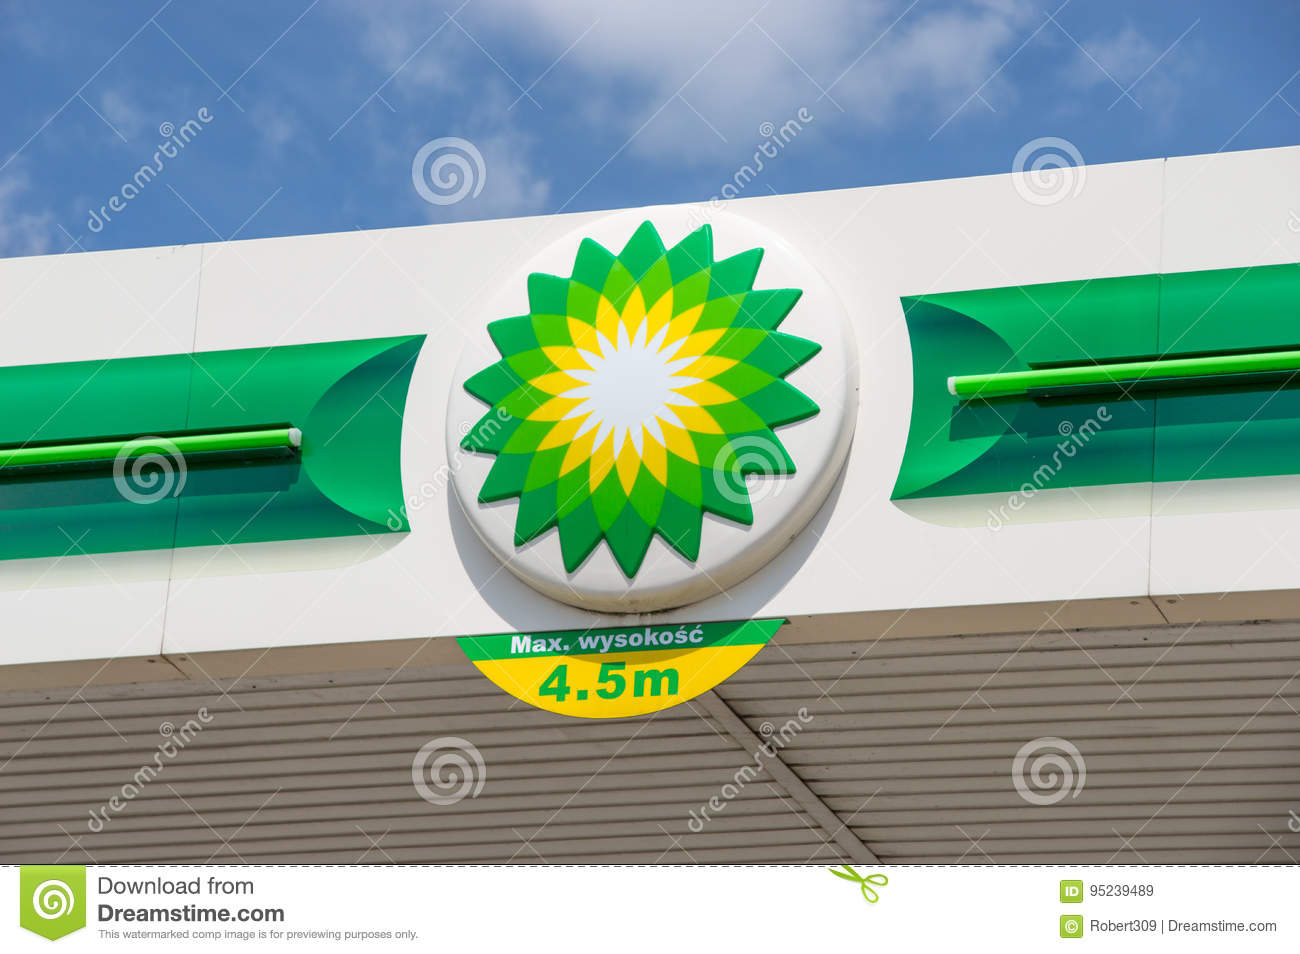 Logo Of Bp British Petroleum On Gas Station Editorial Stock Image